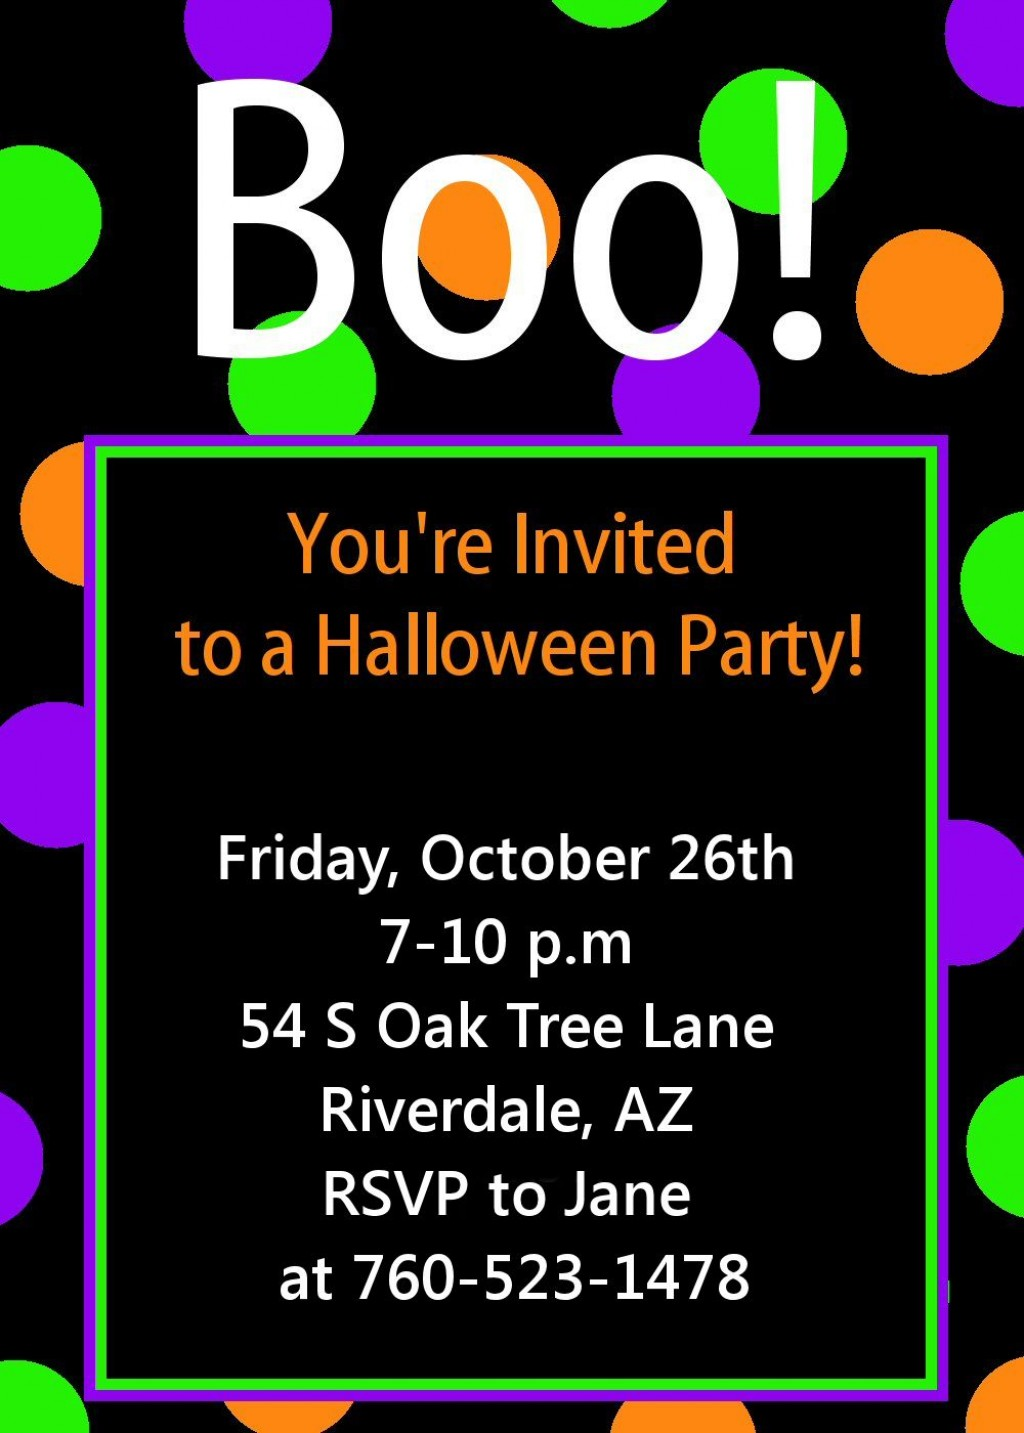 009 Awful Free Halloween Party Invitation Template Picture  Templates Download Printable BirthdayLarge